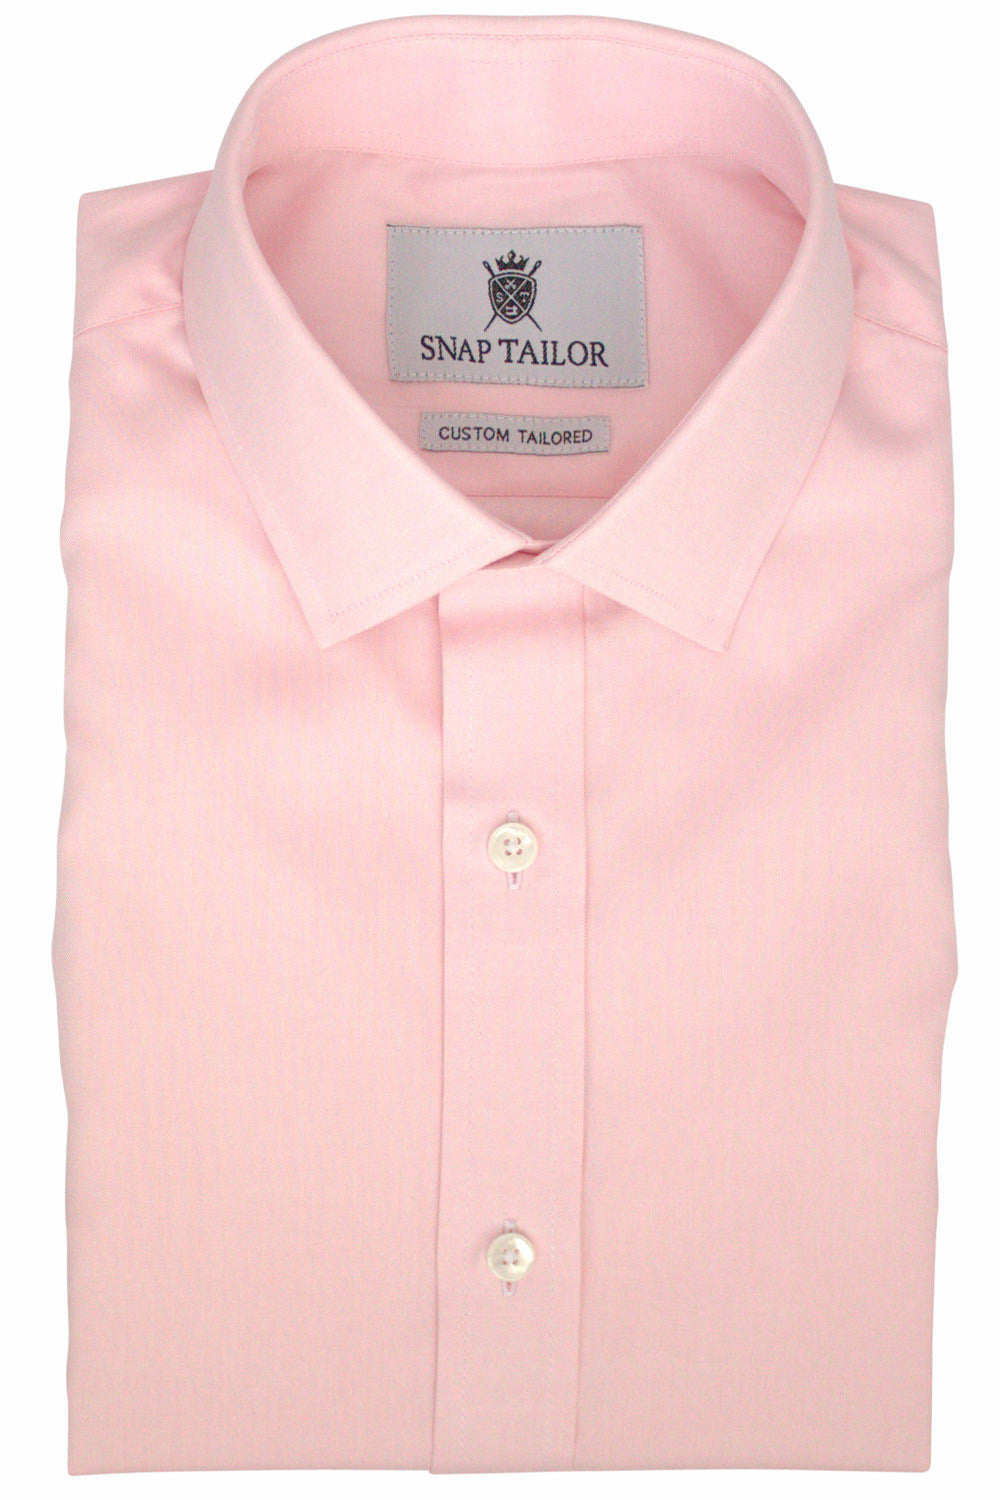 Photo of the Oxford Solid Dress Shirt in Soft Pink